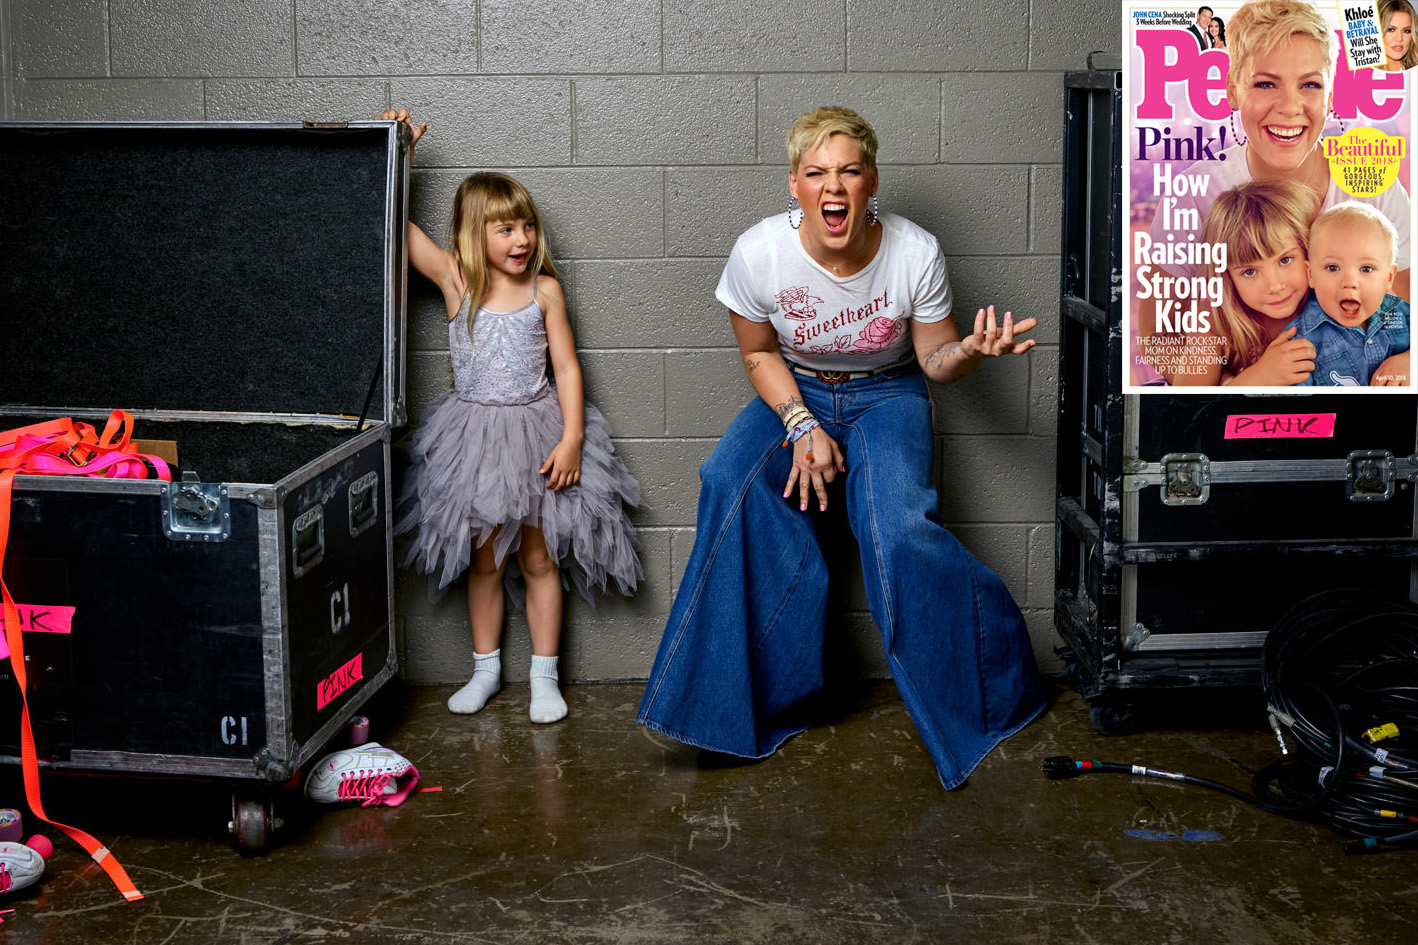 Grammy Winner Pink Graces the Cover of PEOPLE's Beautiful Issue with Her Two Kids